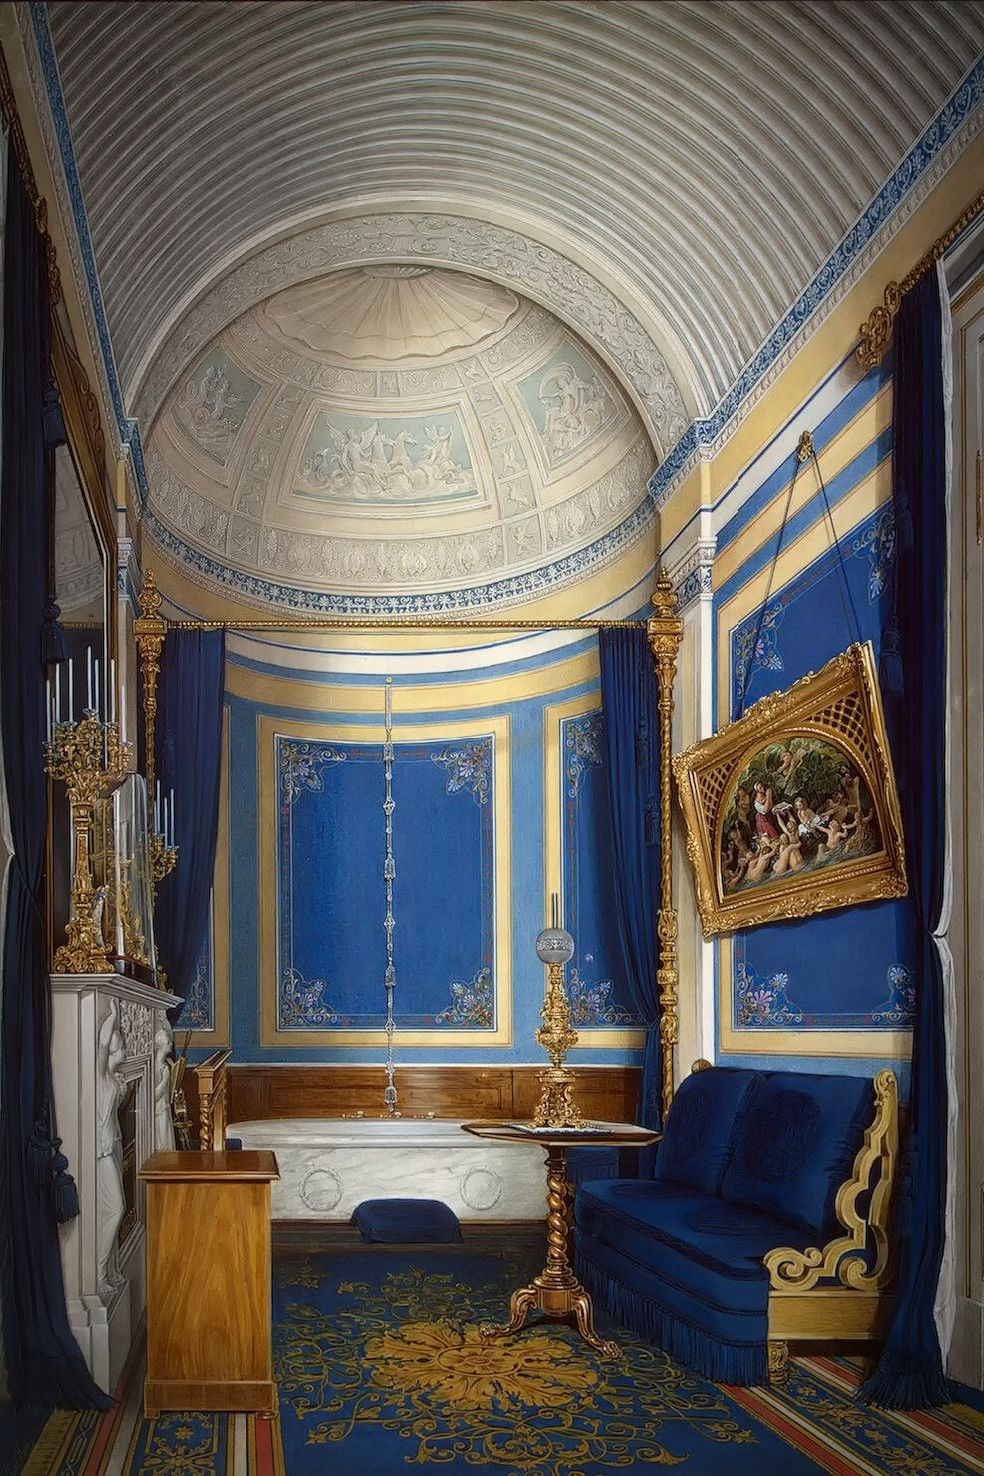 40 Views Inside the Winter Palace of Imperial Russia – 5